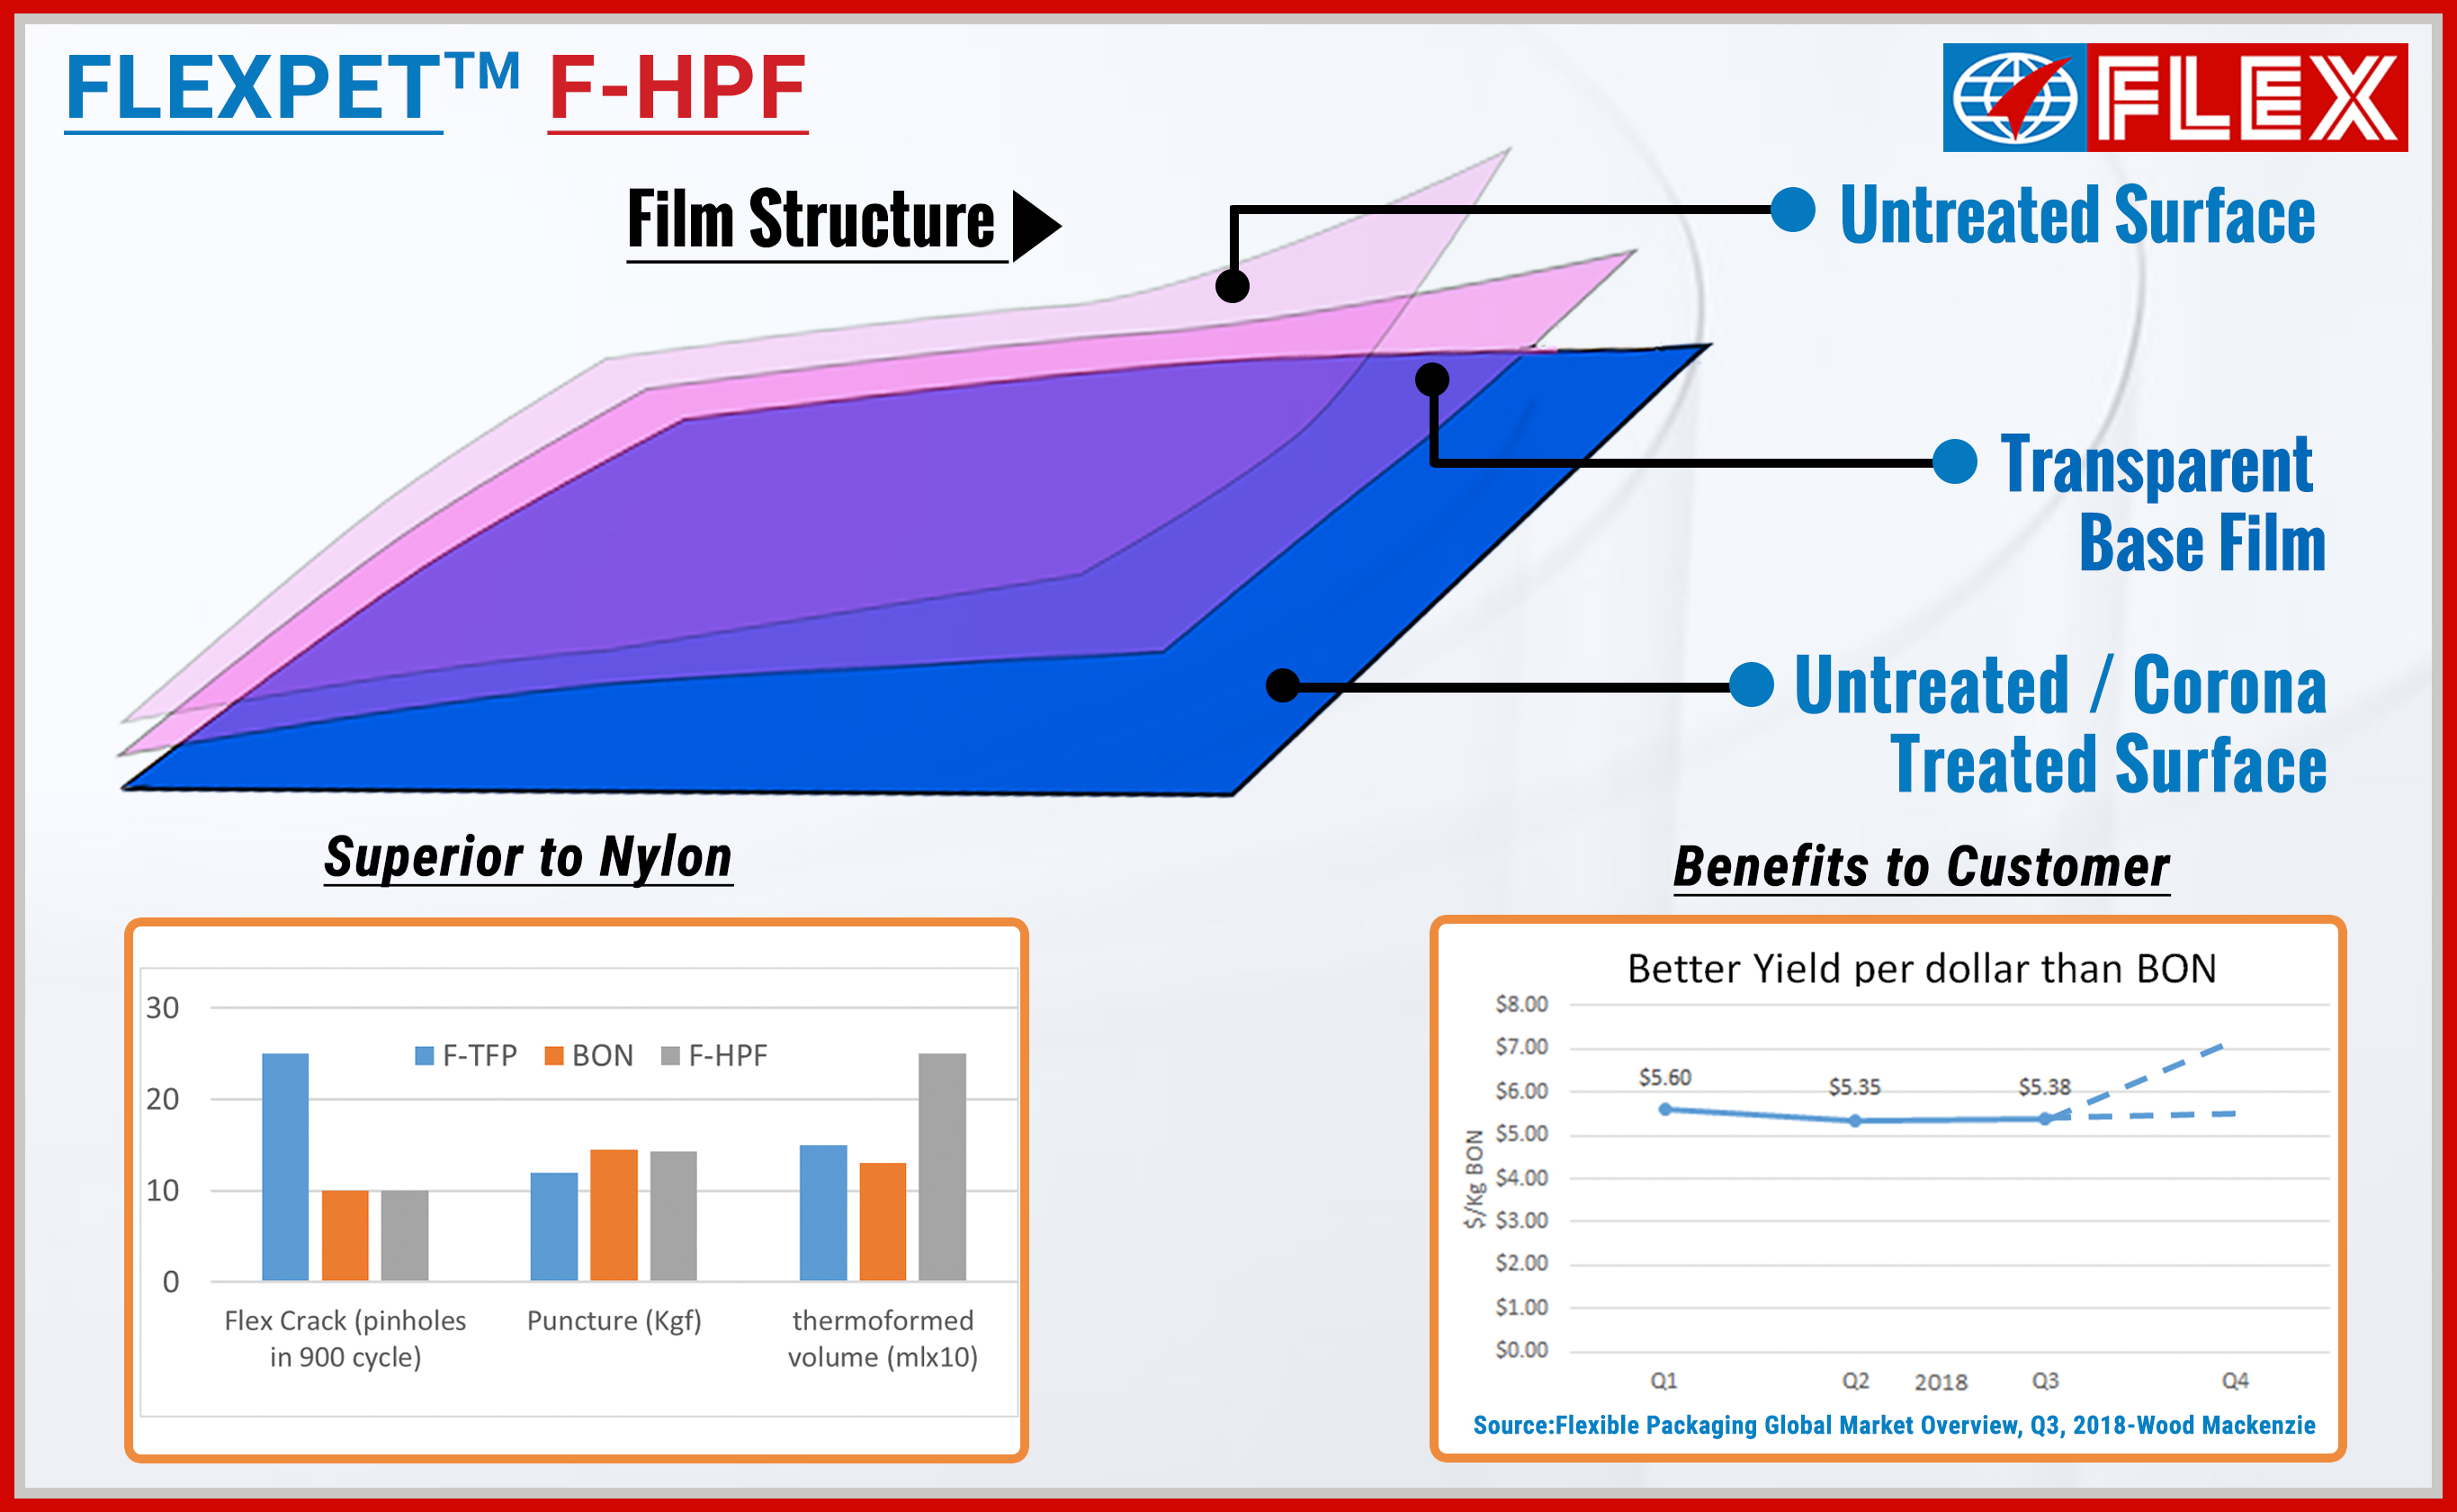 Flex Films Launches F-HPF